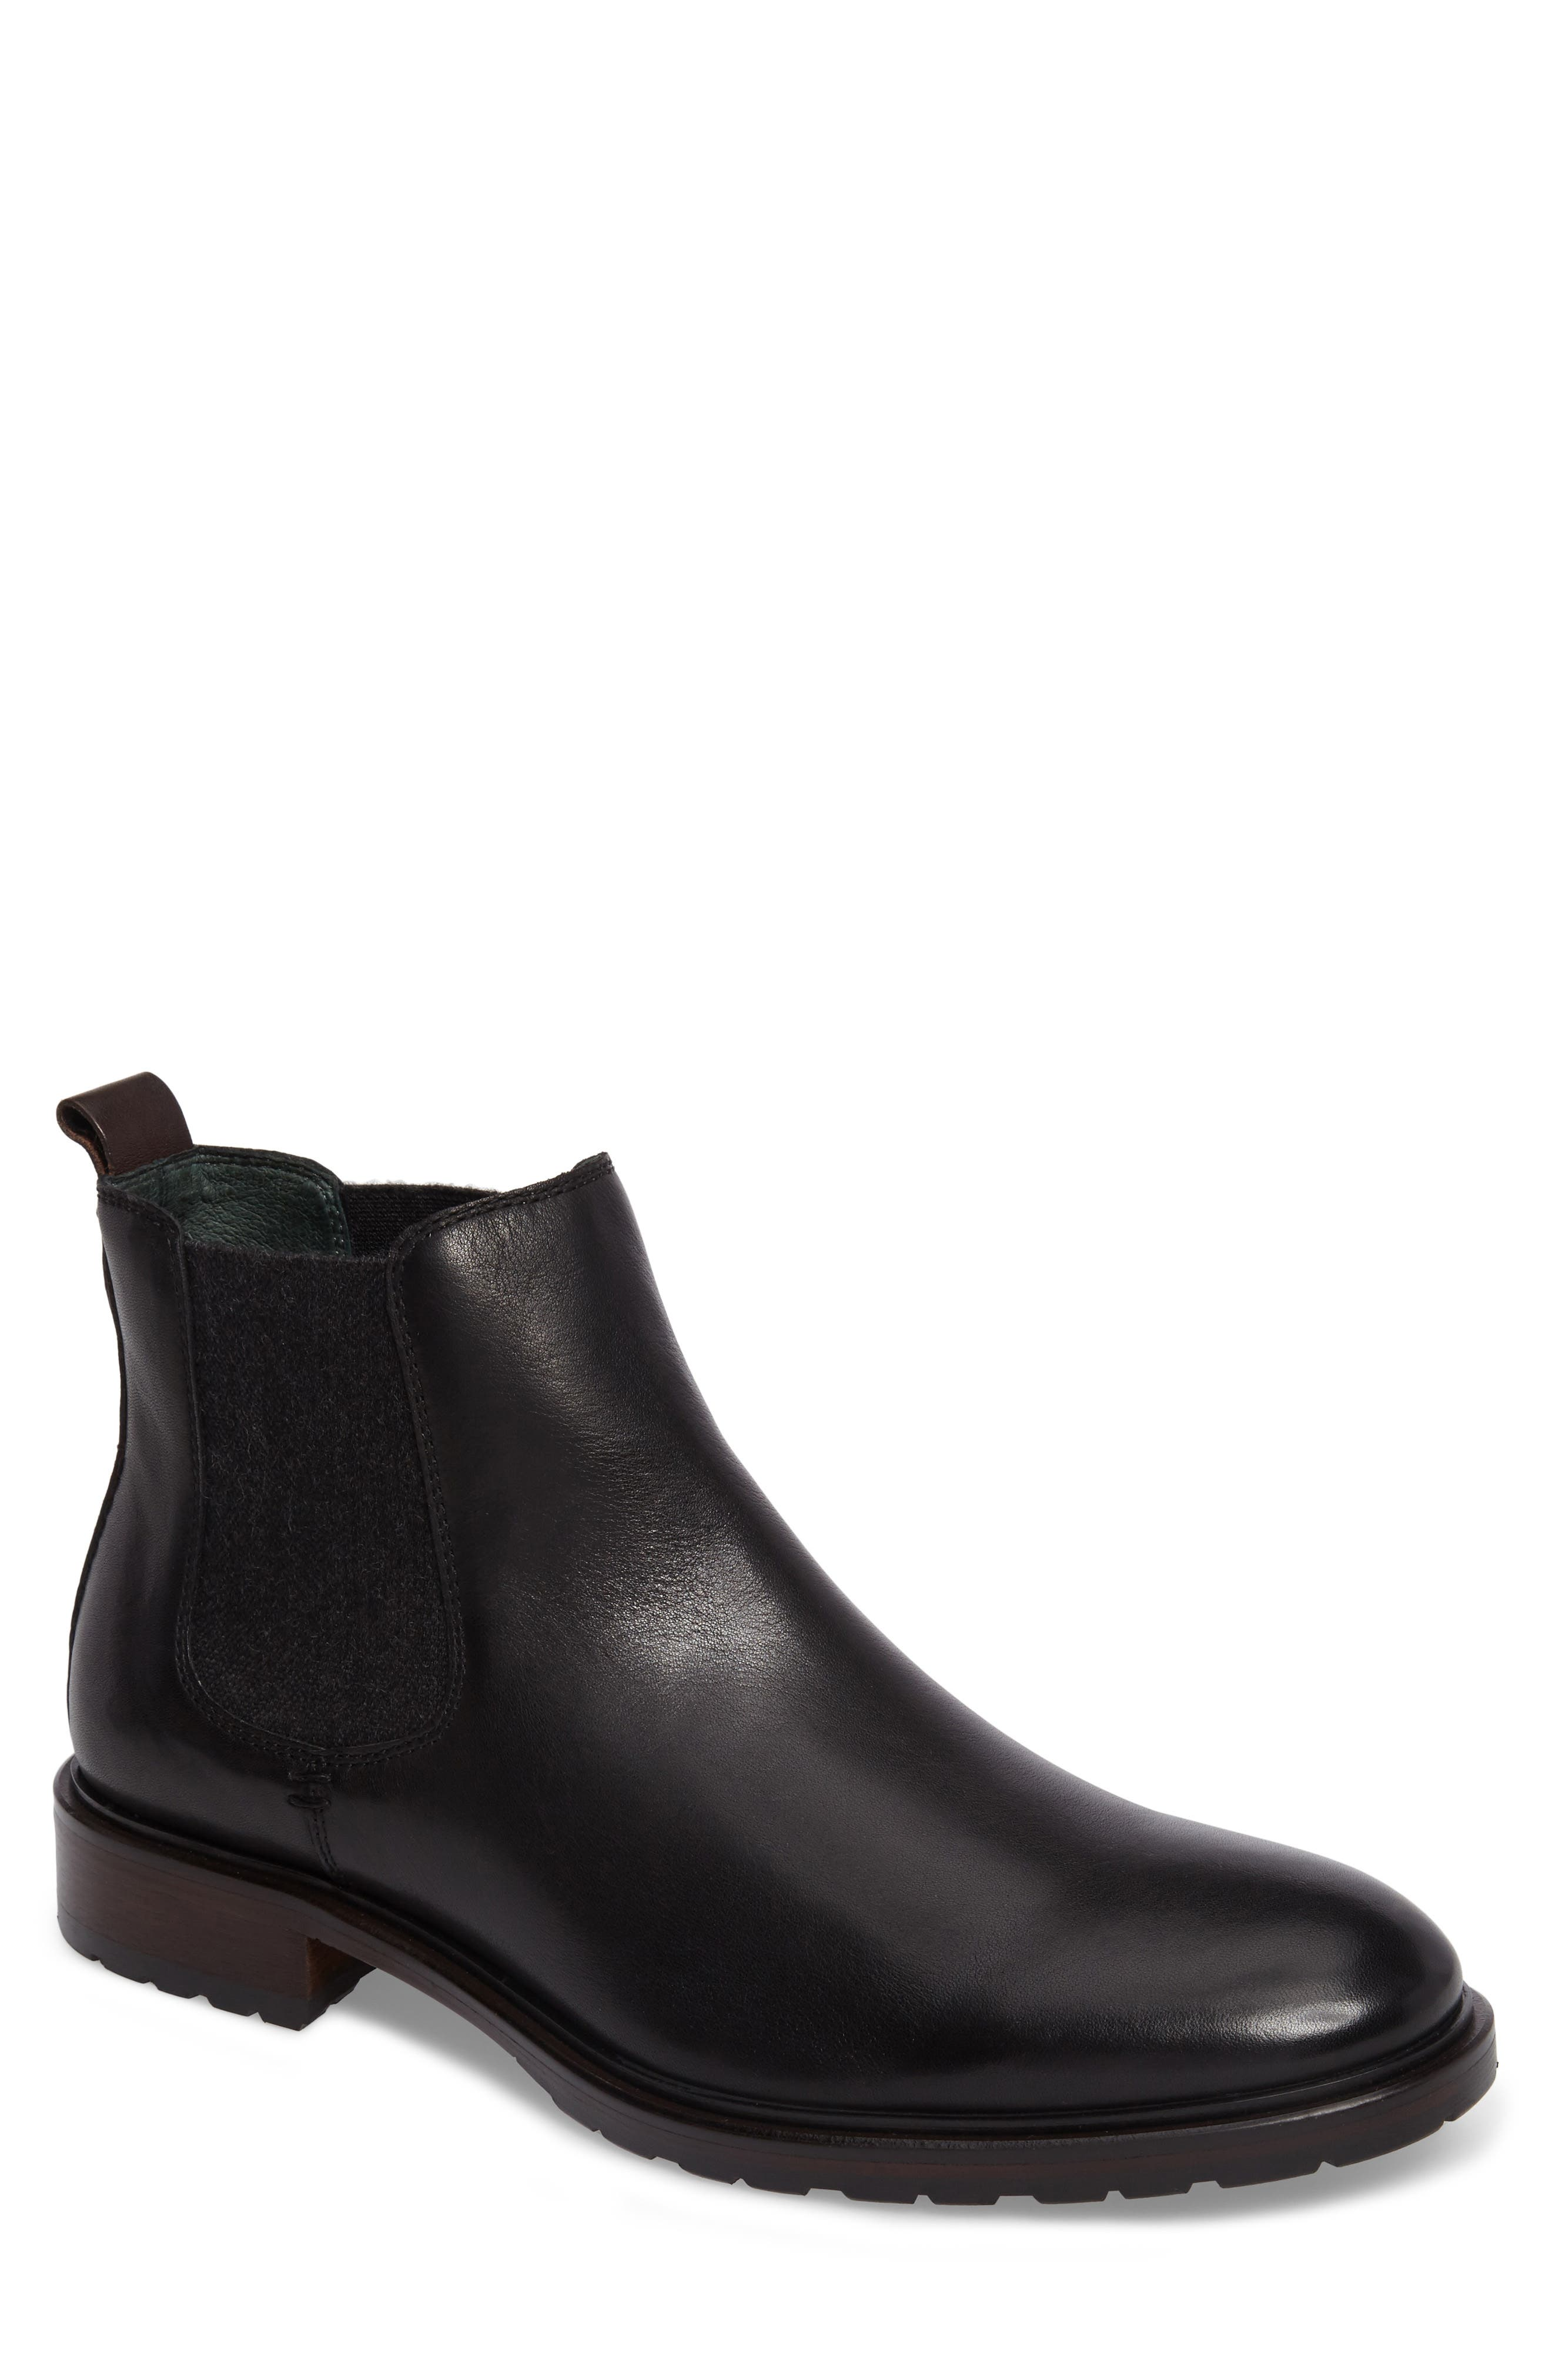 Myles Chelsea Boot,                         Main,                         color, Black Leather